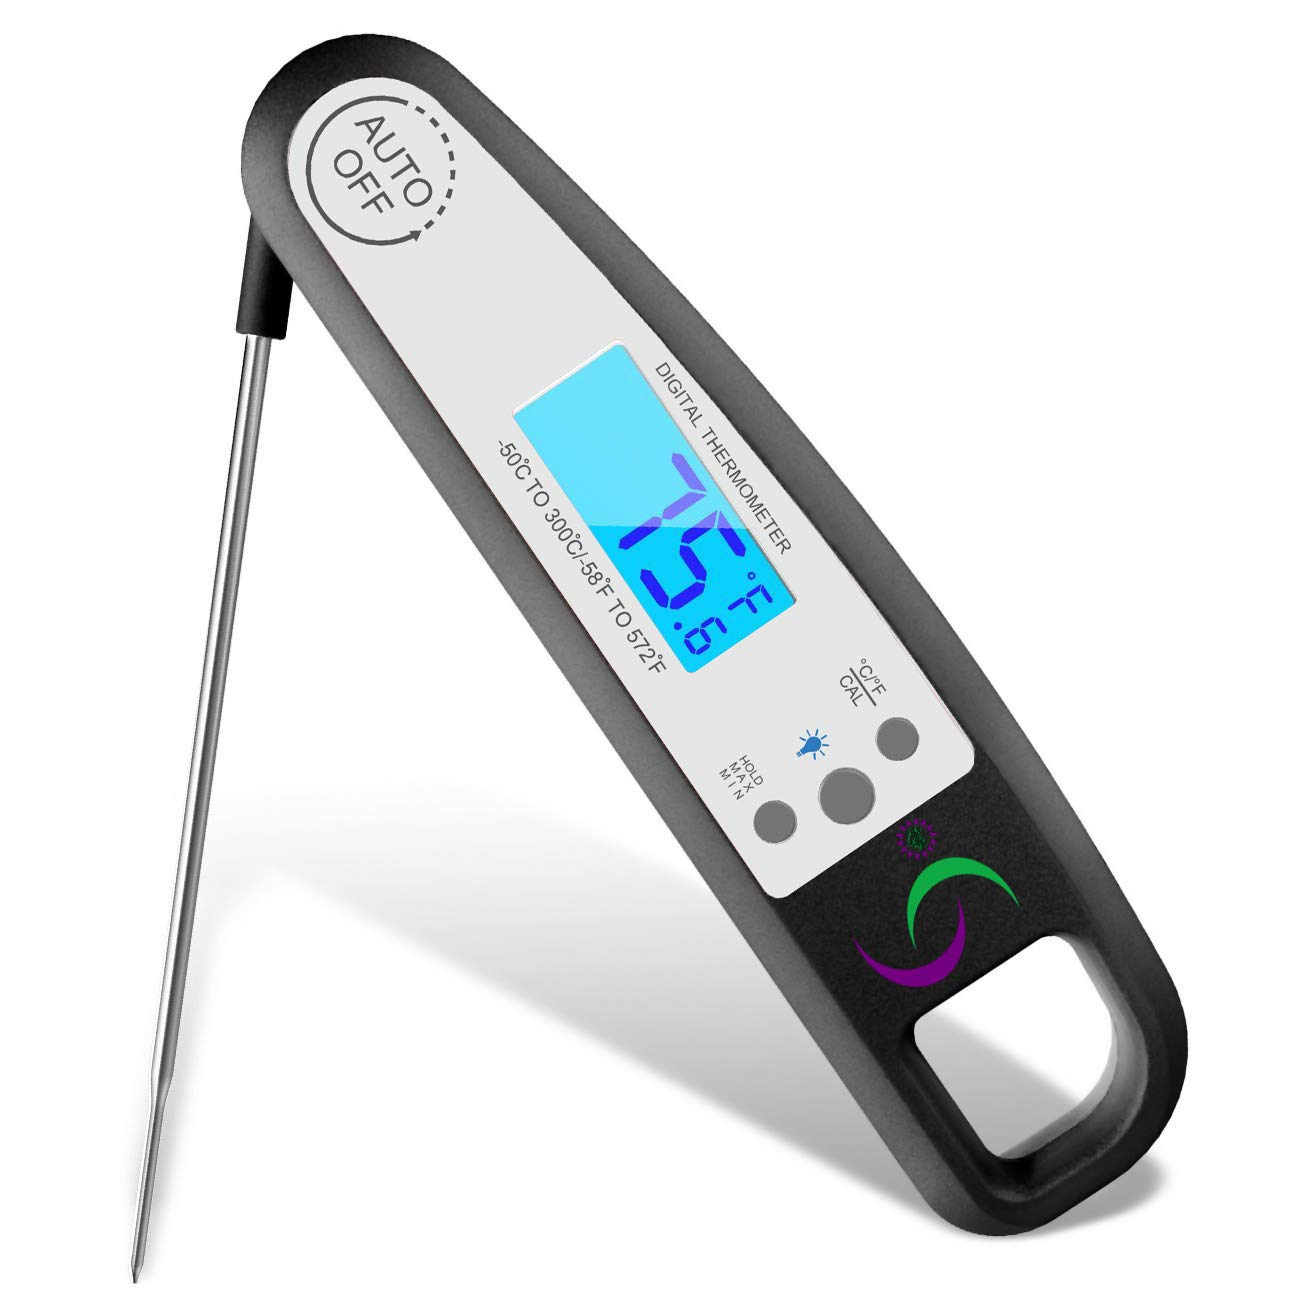 Sol-Chef Digital Instant Read Food Grilling Thermal Lance thermometer with Water & Heat Resistant Case Folding Probe & Backlight led for BBQ grill, Cooking meat, Baking, Liquids, and Oil Frying.